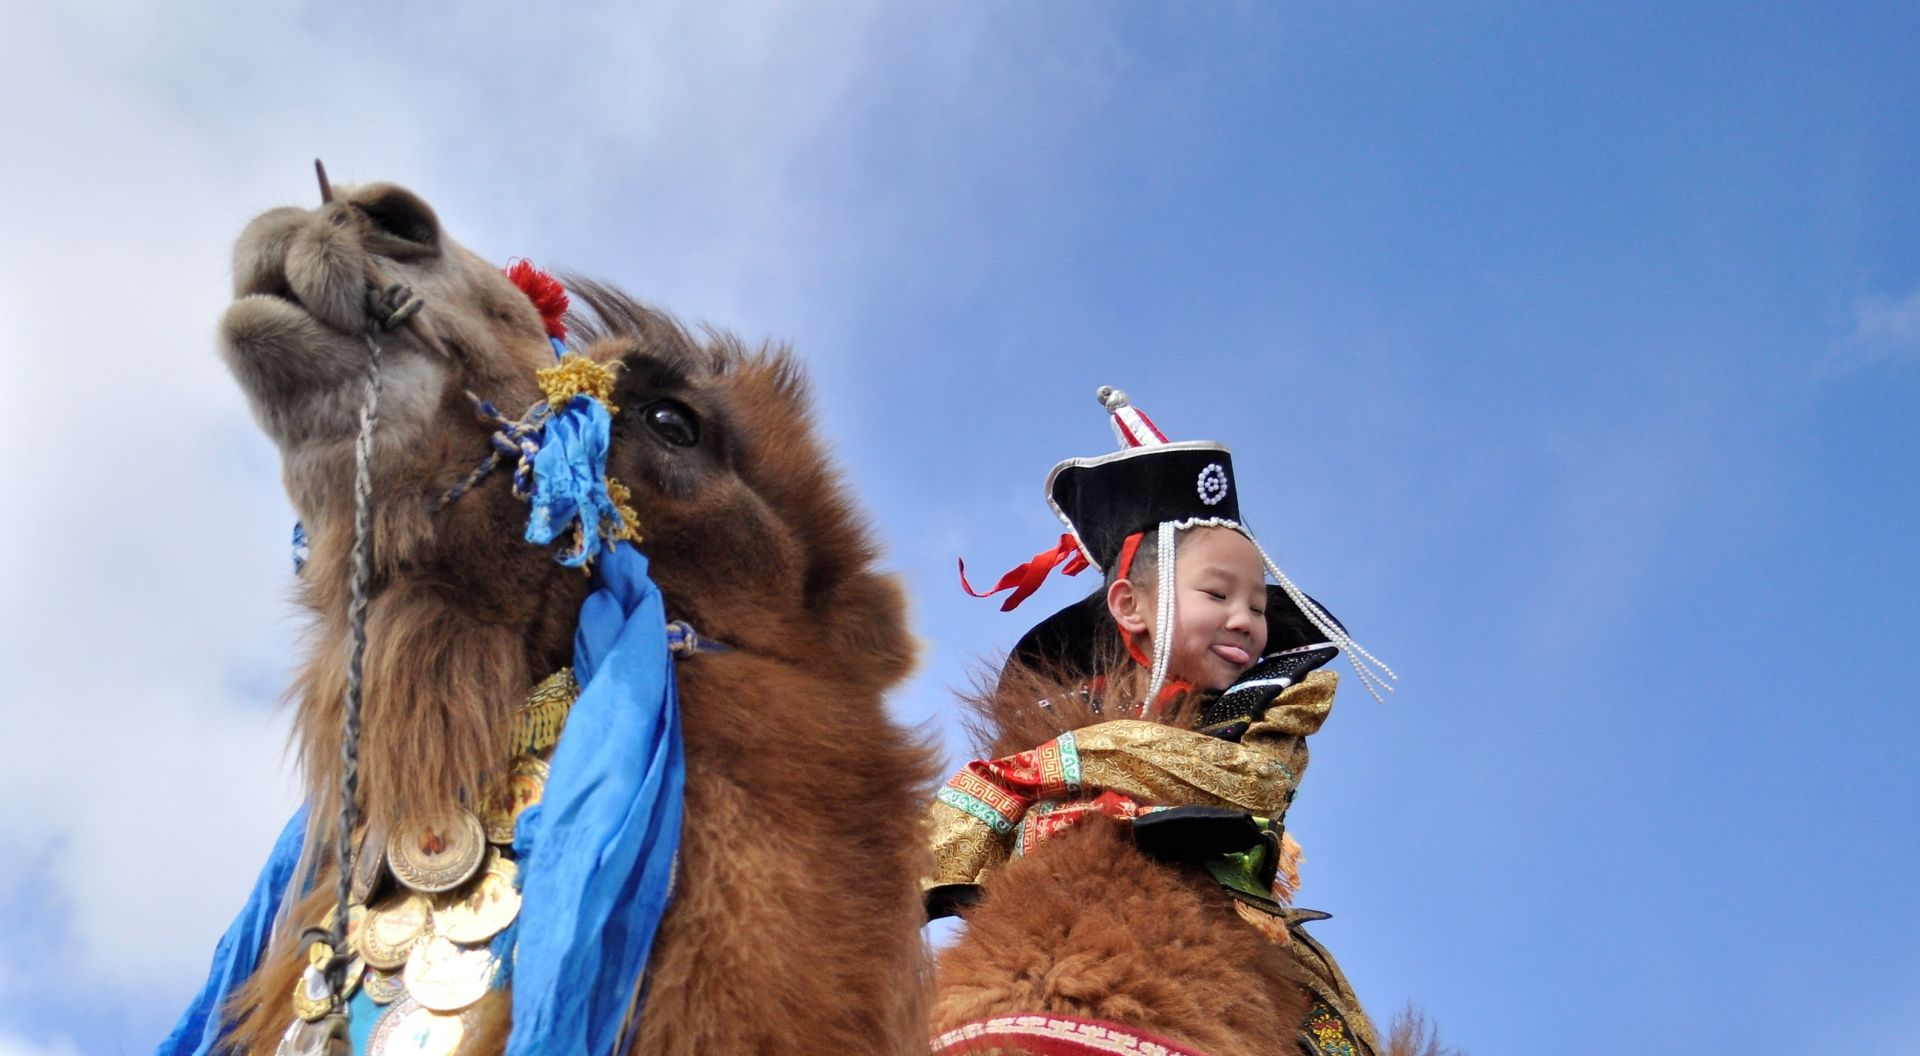 Two-humped camel riding